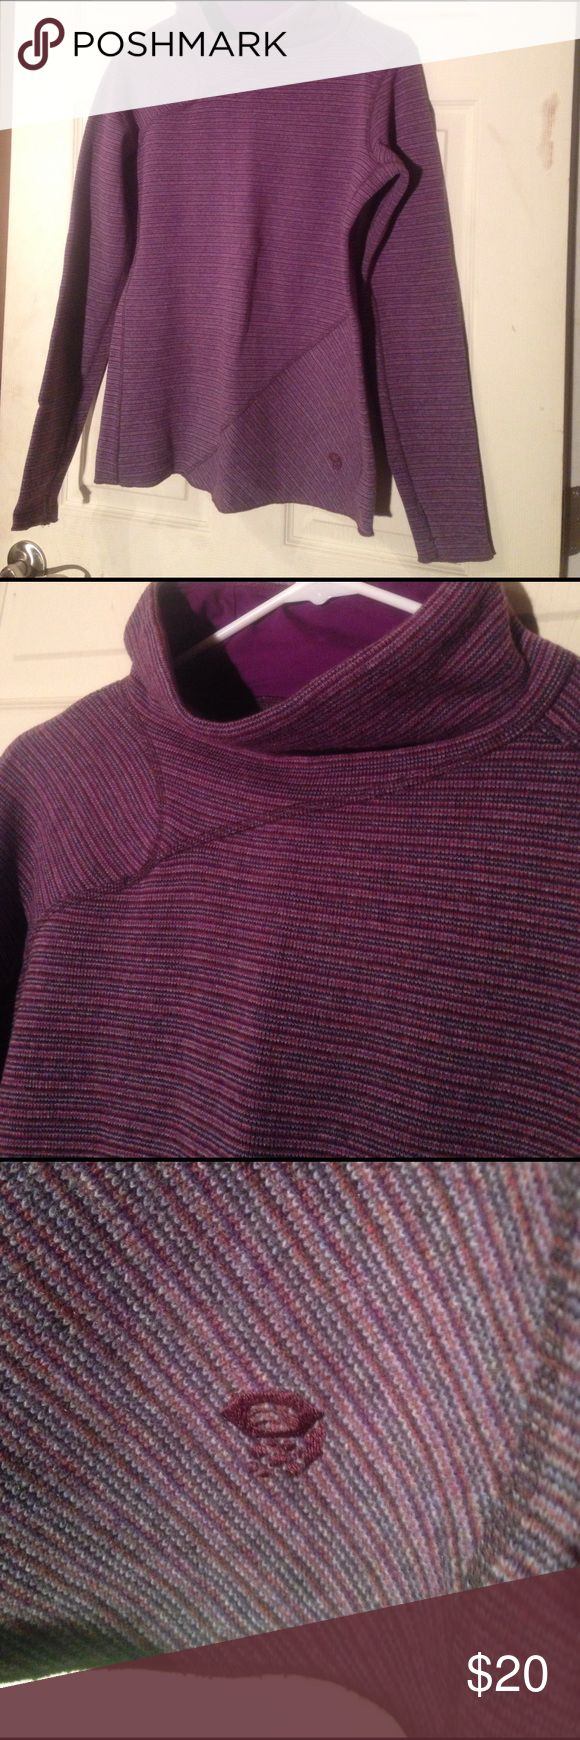 "Medium mountain hardwear sweater shirt NWOT!! Medium purple mountain hard wear sweater shirt. Has a half turtleneck. Holes in sleeves for your thumbs to go through. Warm material but not too hot or thick. 40% polyester, 20% recycled wool, 20% wool, 18% nylon 2% other fibers. 19"" from armpit to bottom hem. 20"" from armpit to armpit. Mountain Hard Wear Tops Tees - Long Sleeve"